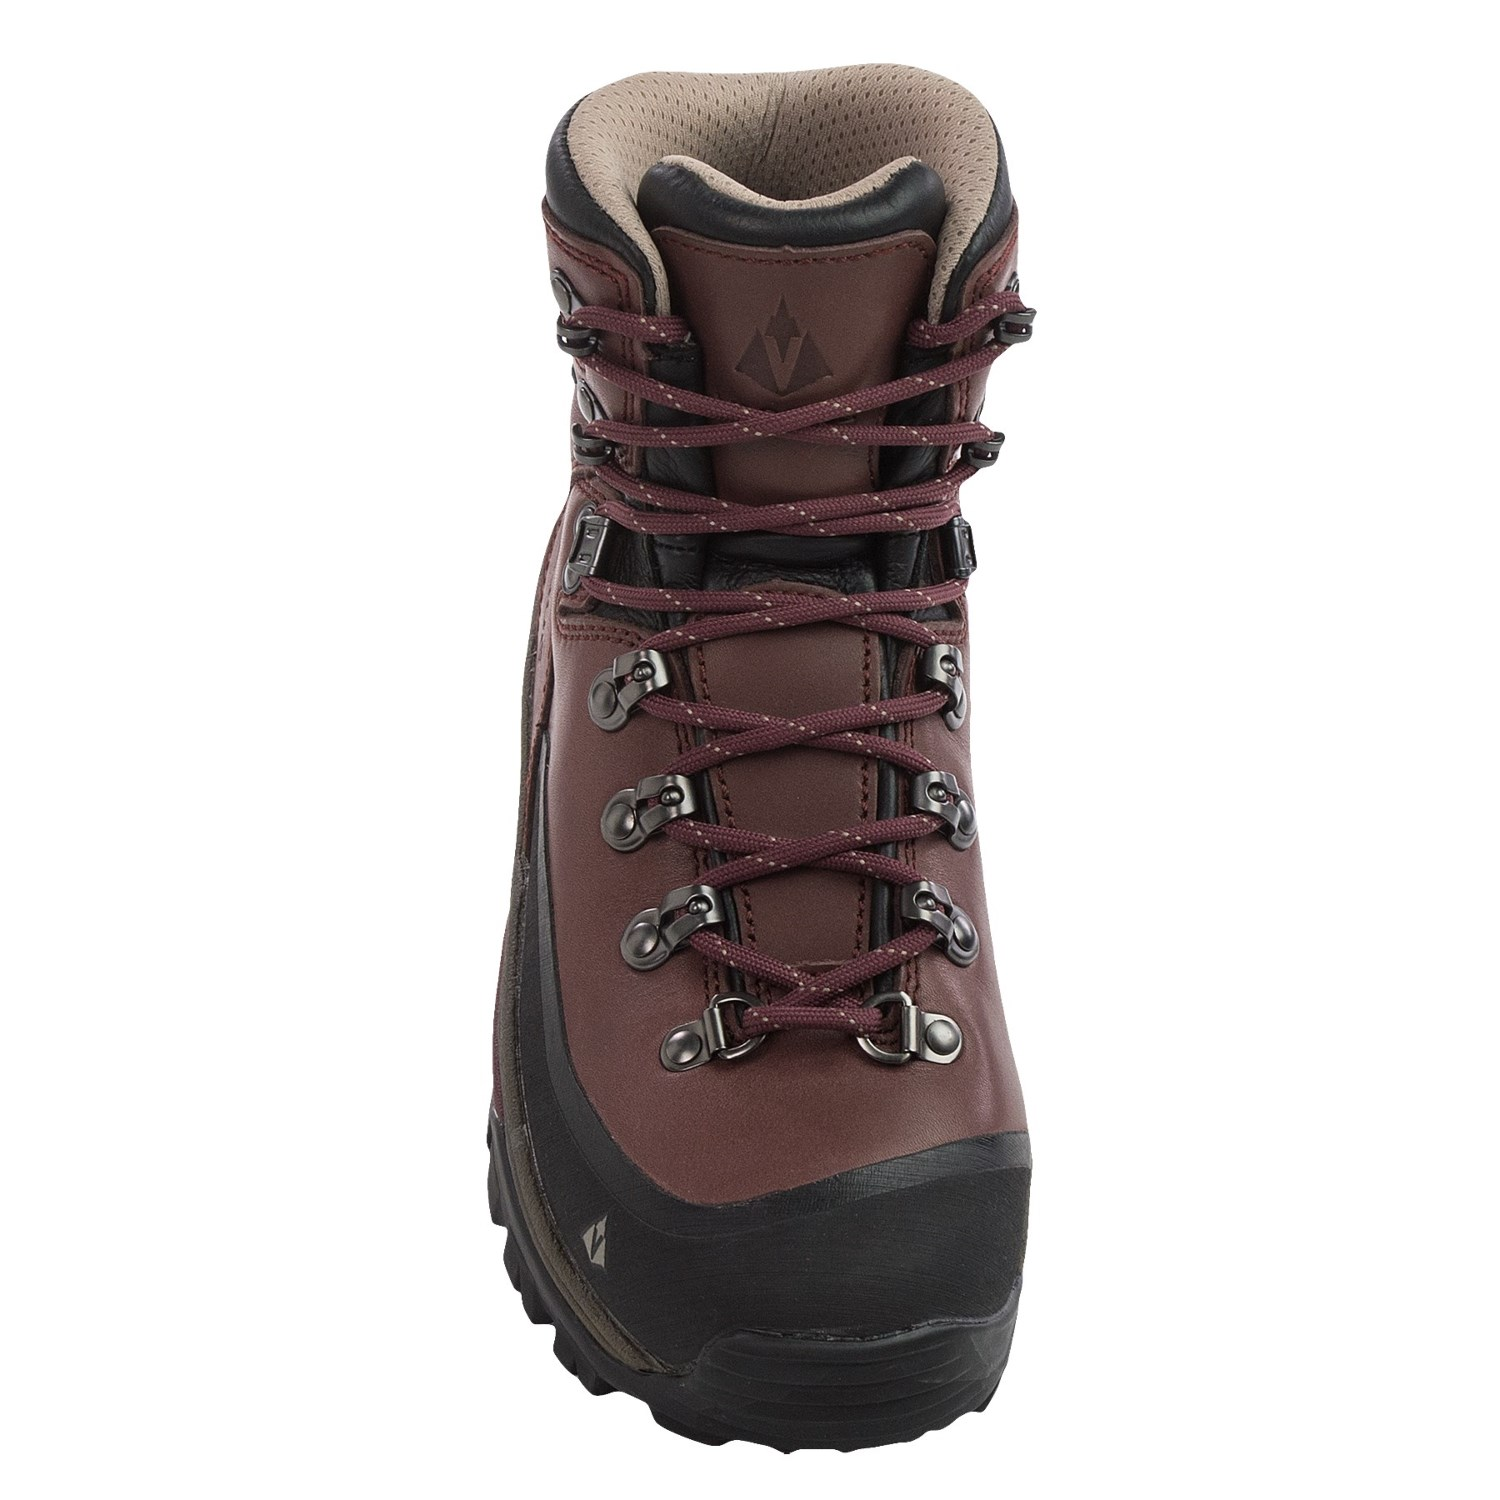 Luxury Vasque Inhaler Gore-Texu00ae Hiking Boots (For Women) - Save 60%